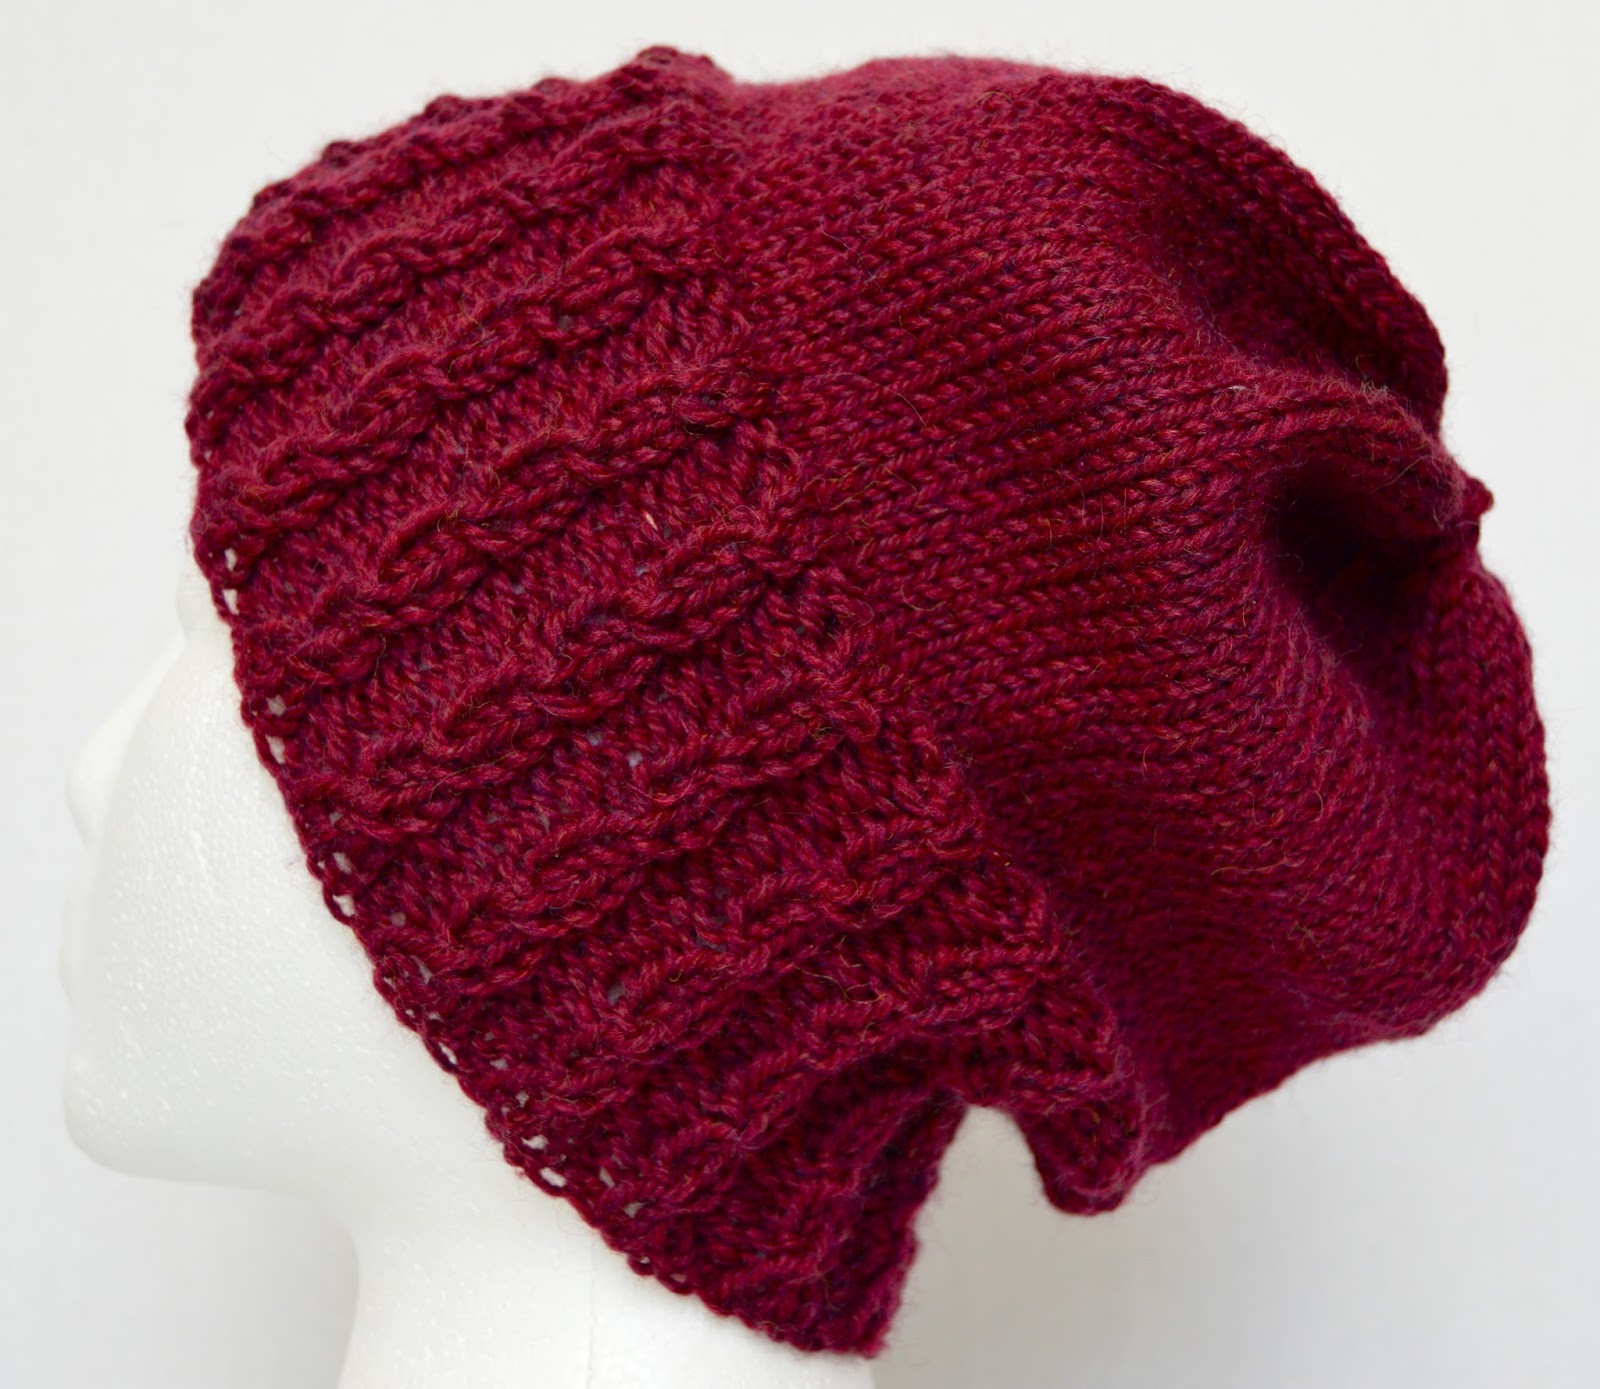 cd5df75a3 Jeannie Gray Knits: Like mother, like daughter